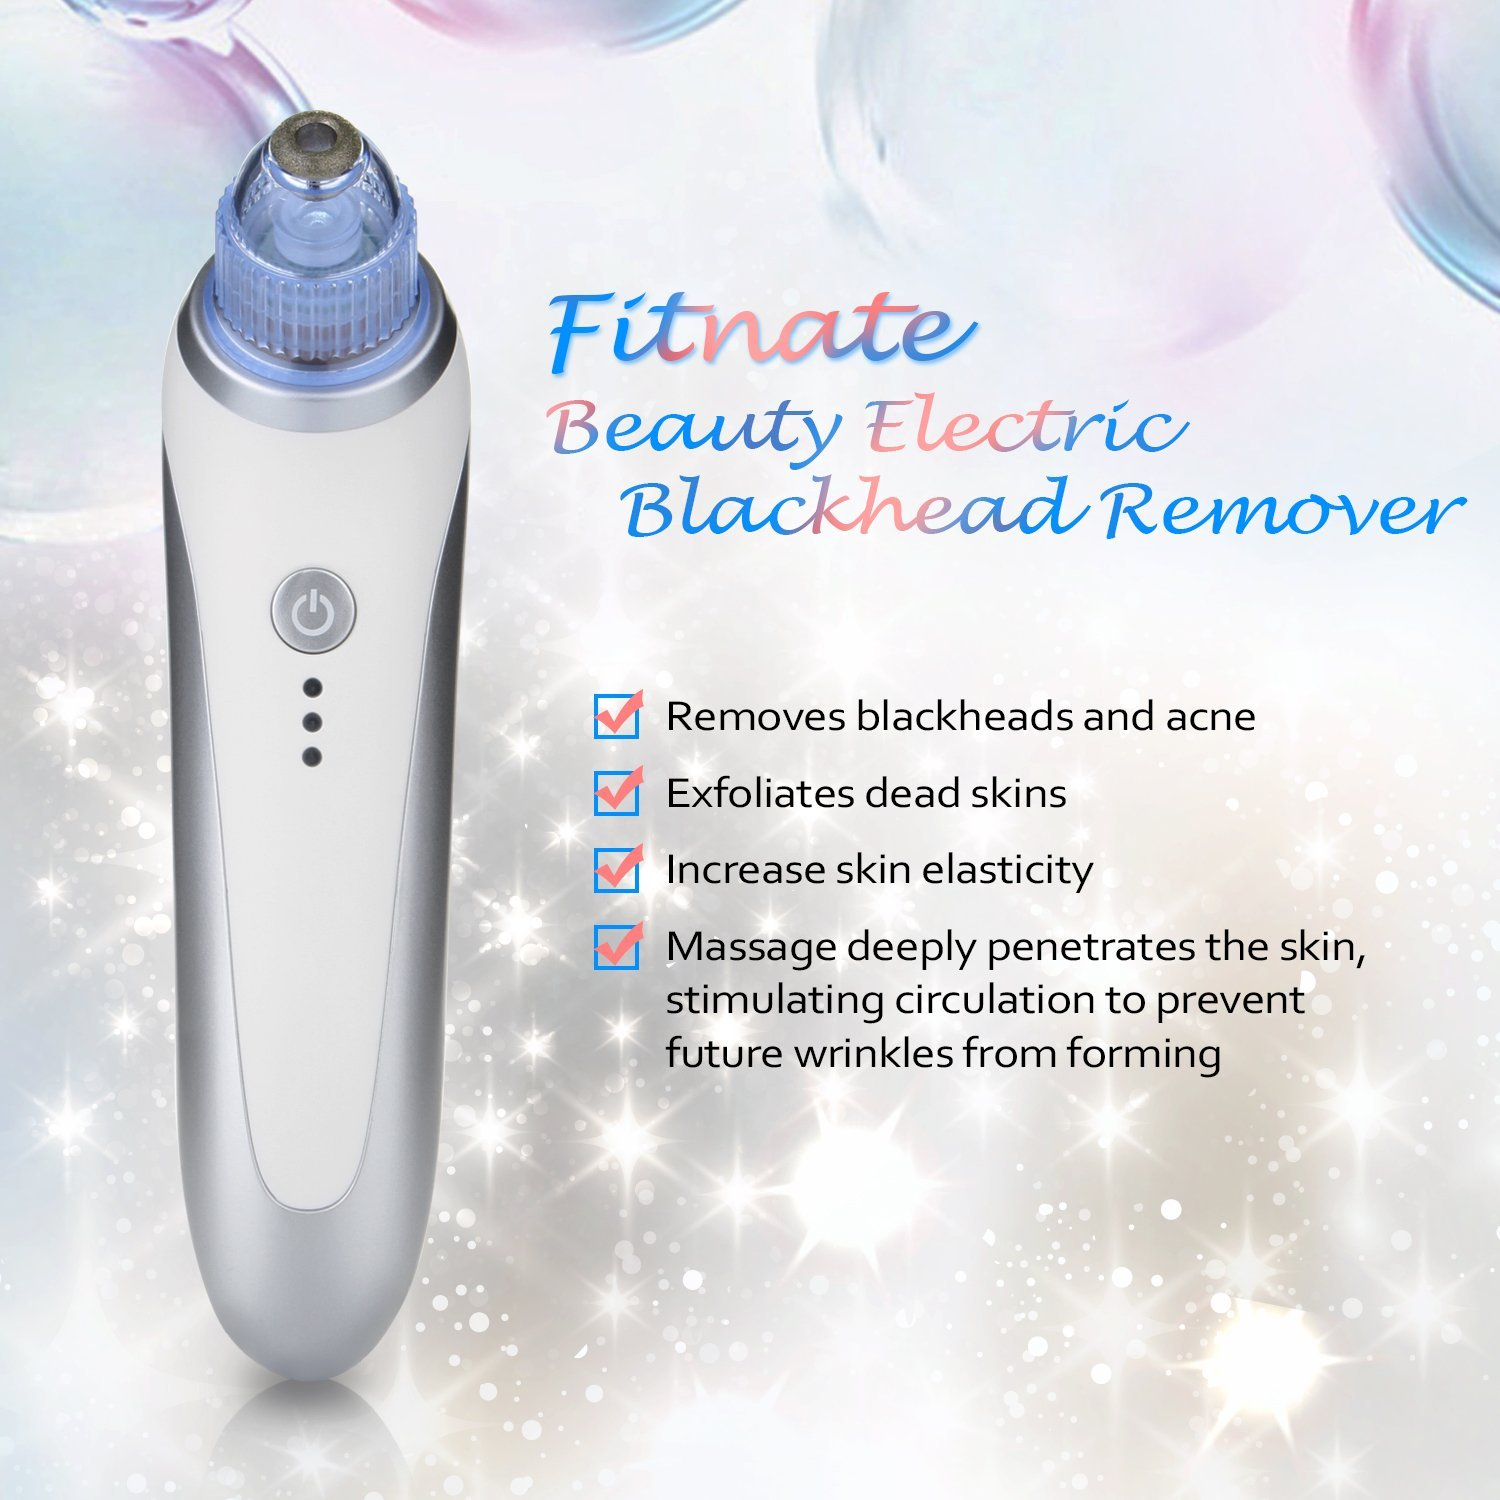 Blackhead Remover, Fitnate-Beauty Electric Blackhead Removal Tool, Rechargeable Blackhead Pore Vacuum Suction Remover, Skin Pore Cleanser with 5 Replaceable Suction Probes (Blue Light introduction): B